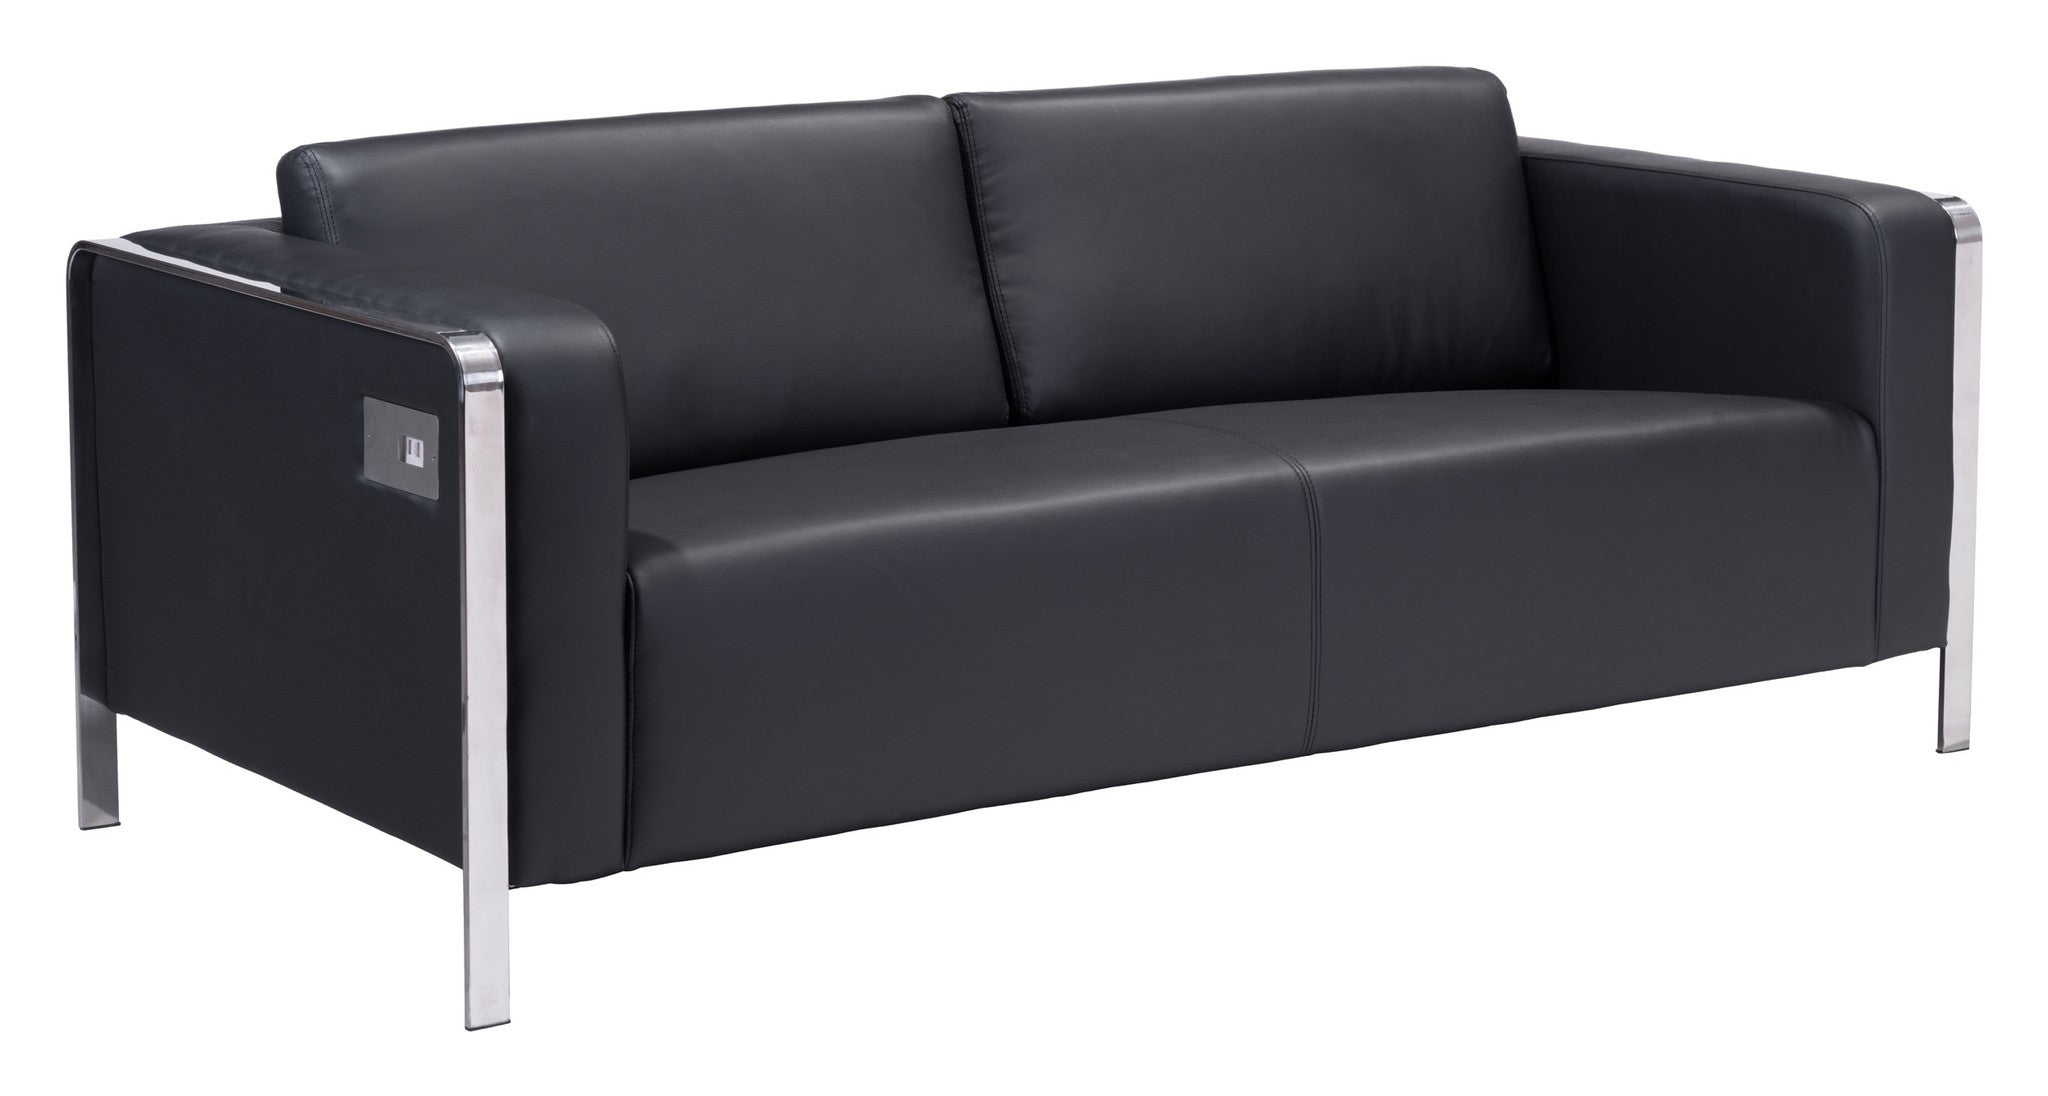 Thor Sofa In Black Leatherette With Stainless Steel Accent U0026 Legs Sofas Alan  Decor ...